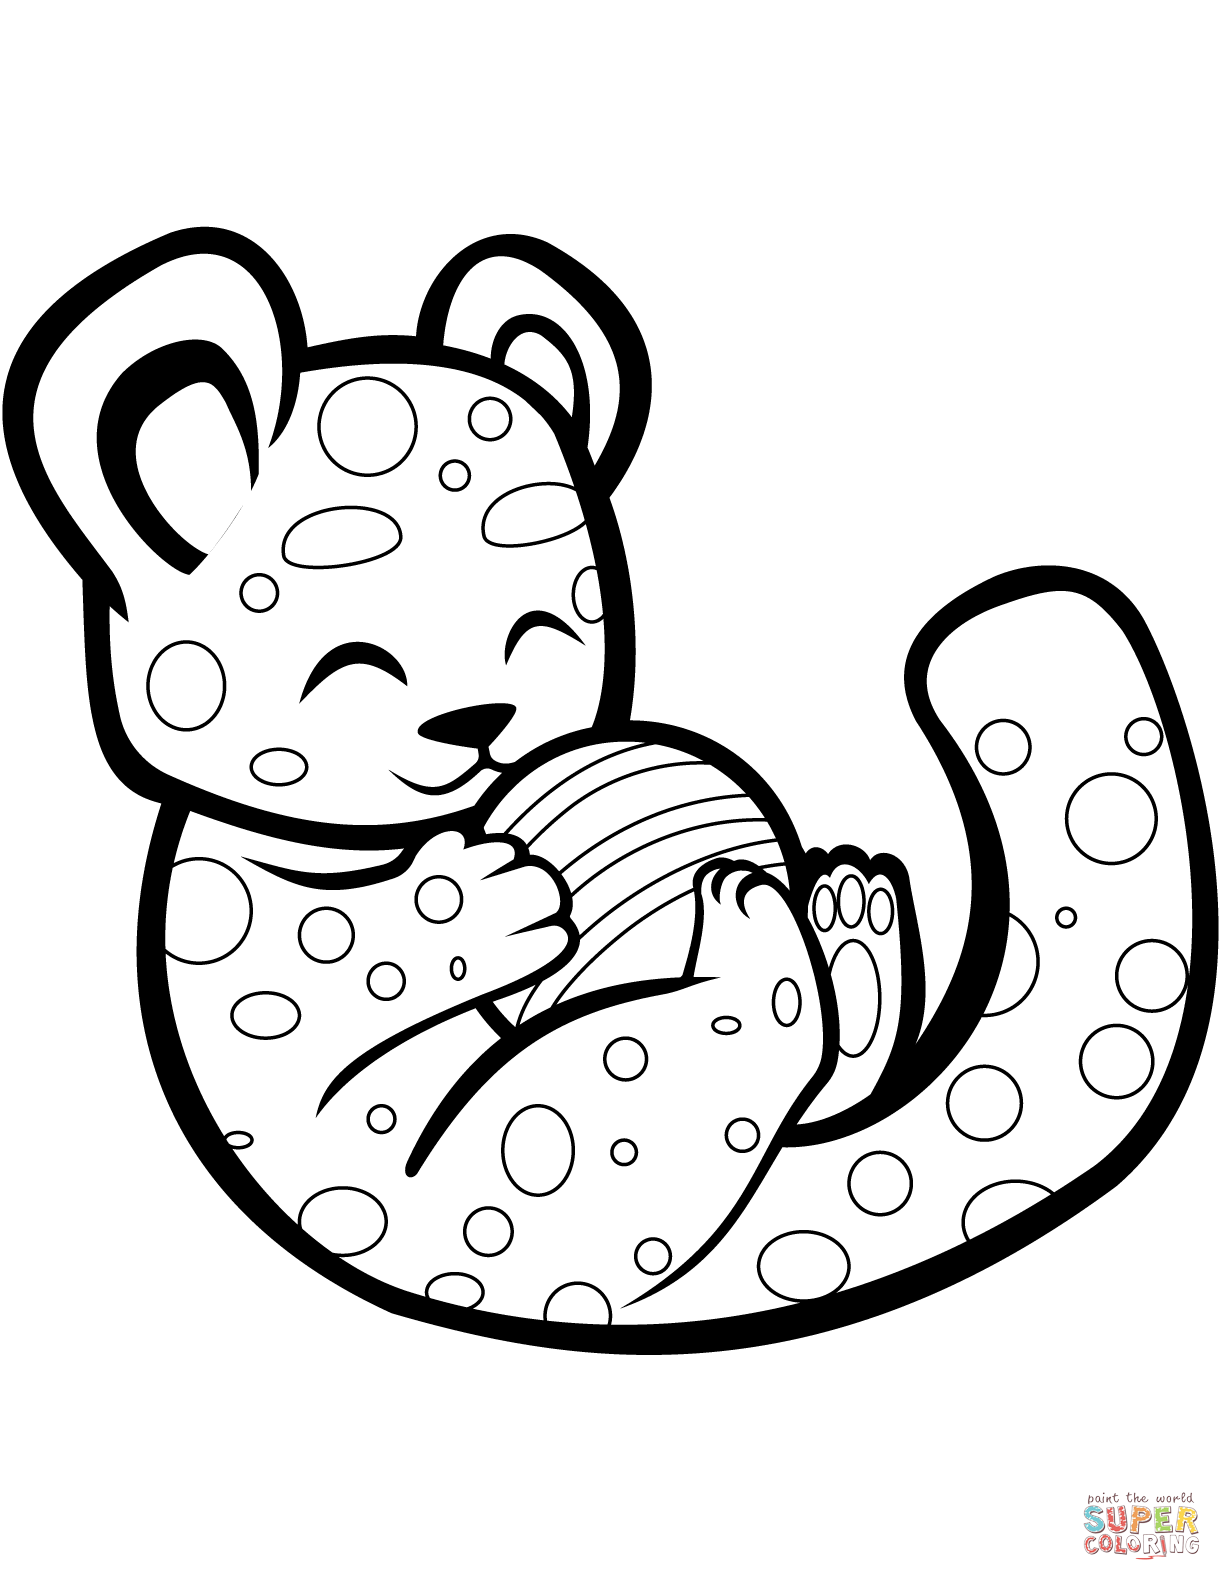 Cute Cheetah Playing With A Ball Coloring Page